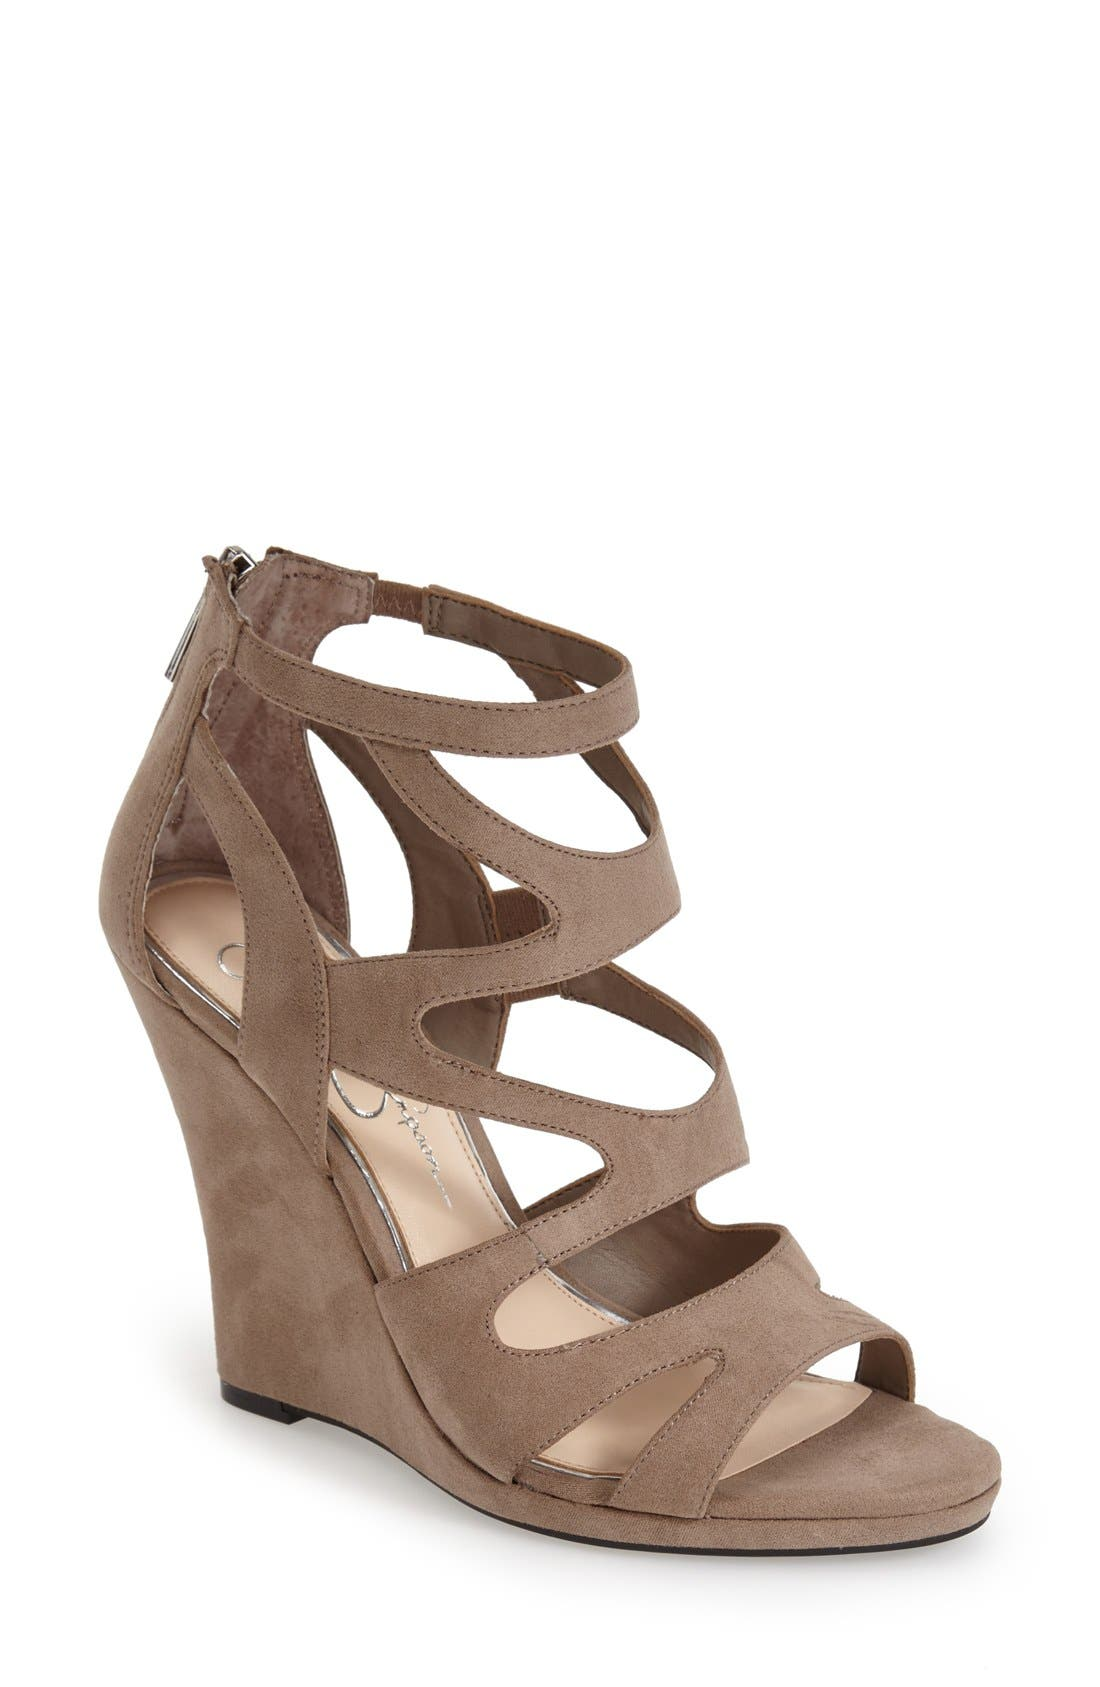 Alternate Image 1 Selected - Jessica Simpson 'Delina' Sandal (Women)